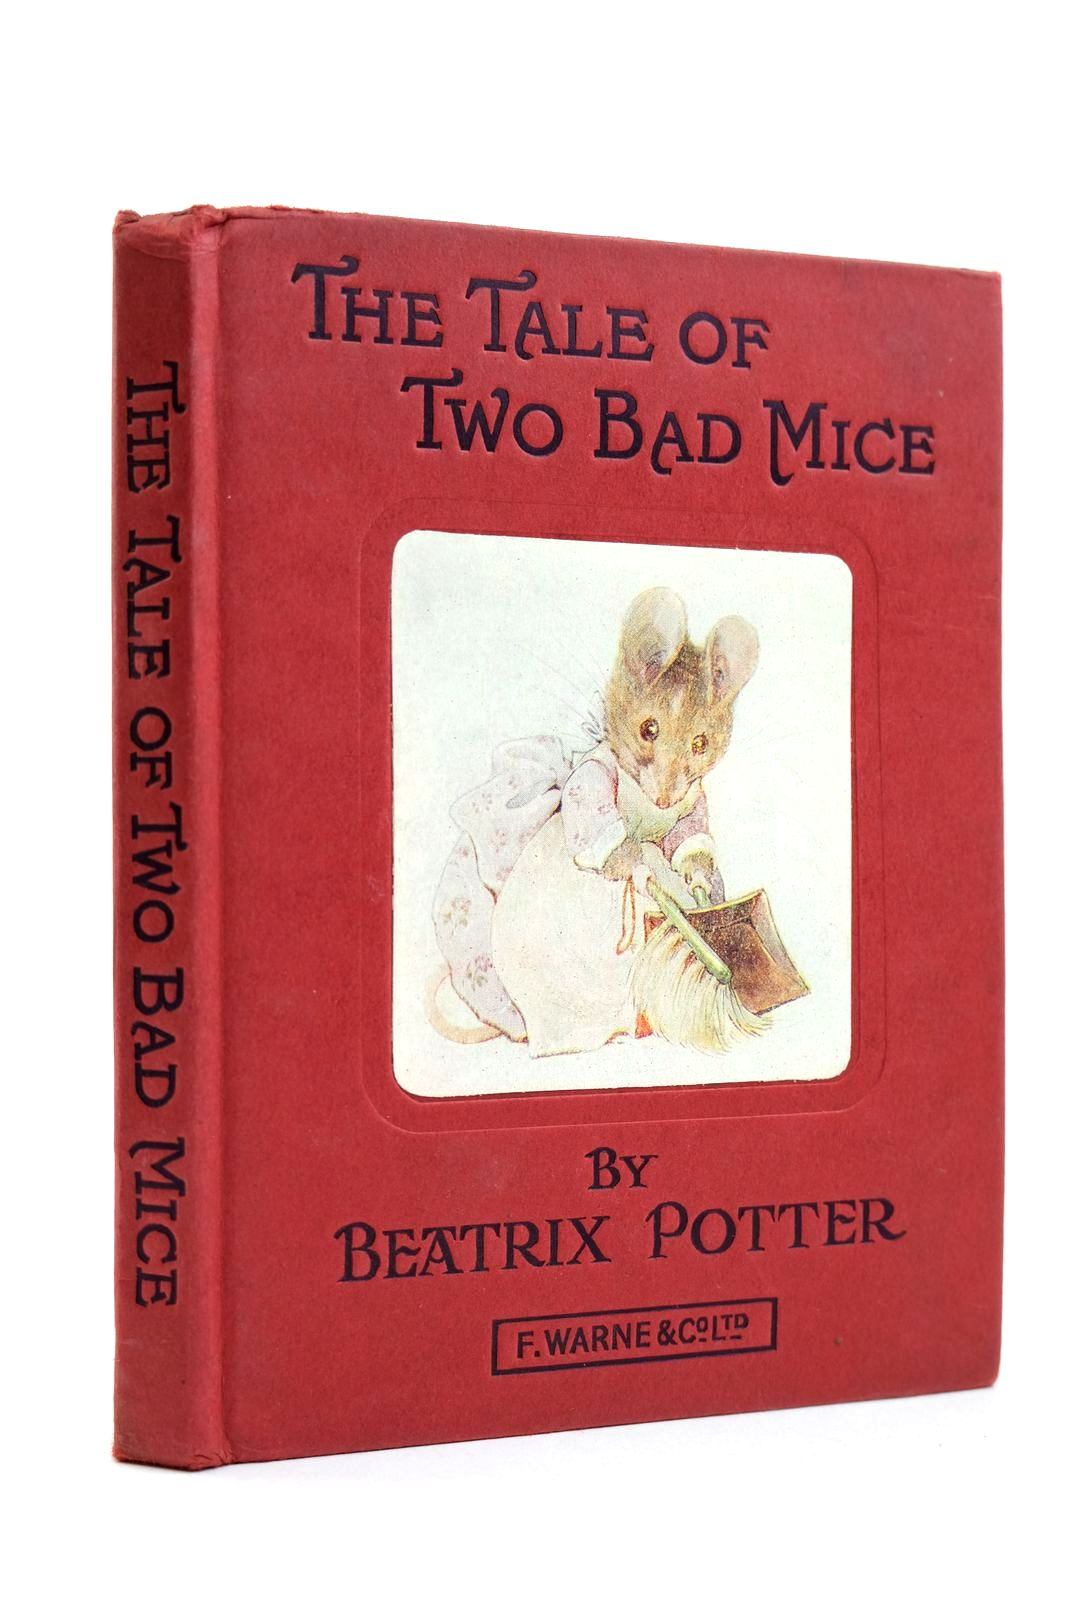 Photo of THE TALE OF TWO BAD MICE written by Potter, Beatrix illustrated by Potter, Beatrix published by Frederick Warne & Co Ltd. (STOCK CODE: 2131891)  for sale by Stella & Rose's Books